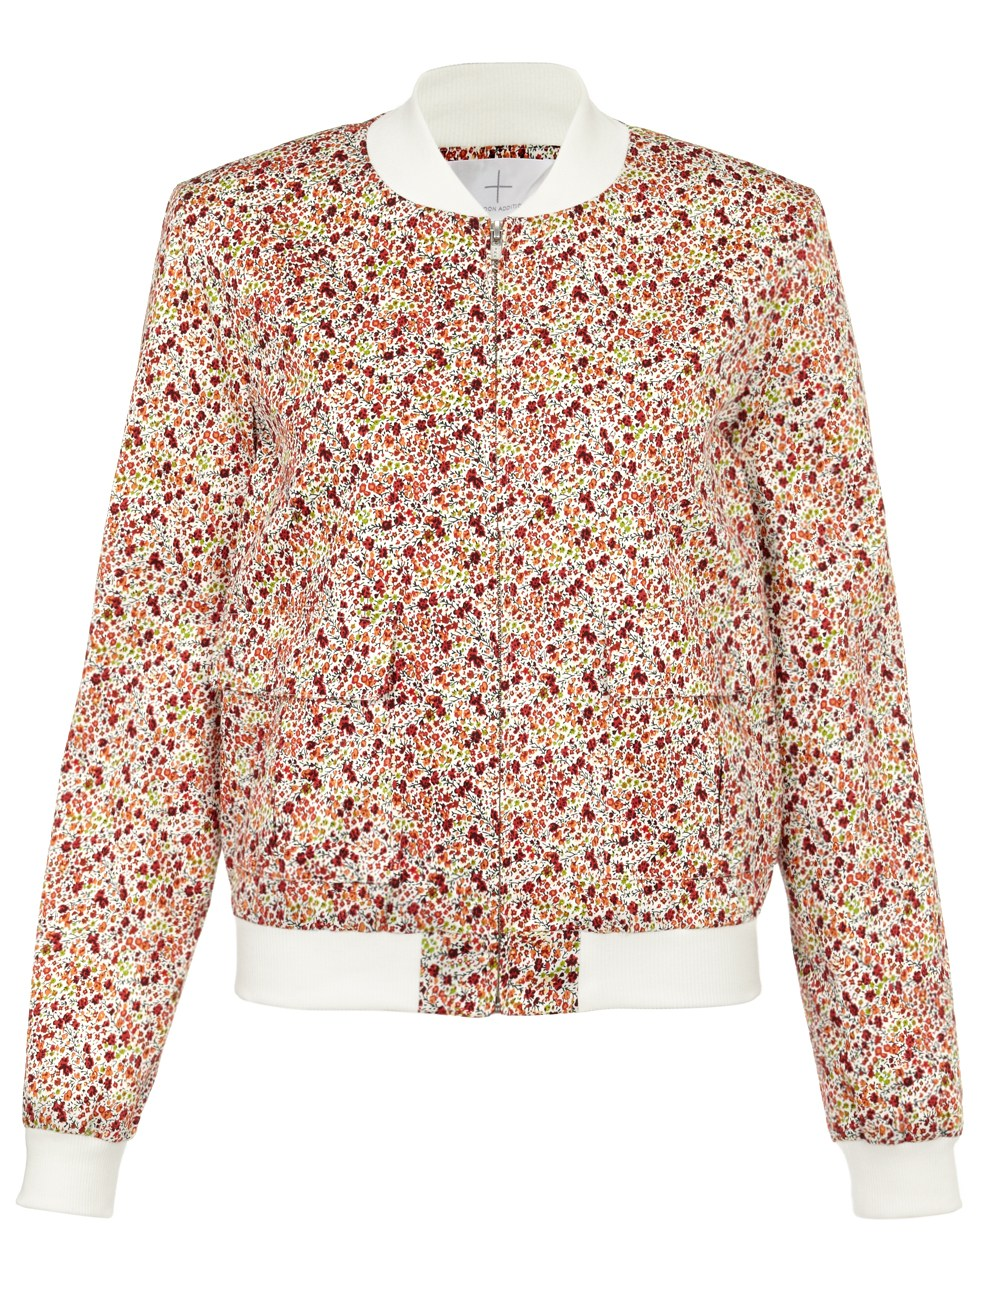 Thakoon addition Pink Floral Pocketed Bomber Jacket in Pink | Lyst